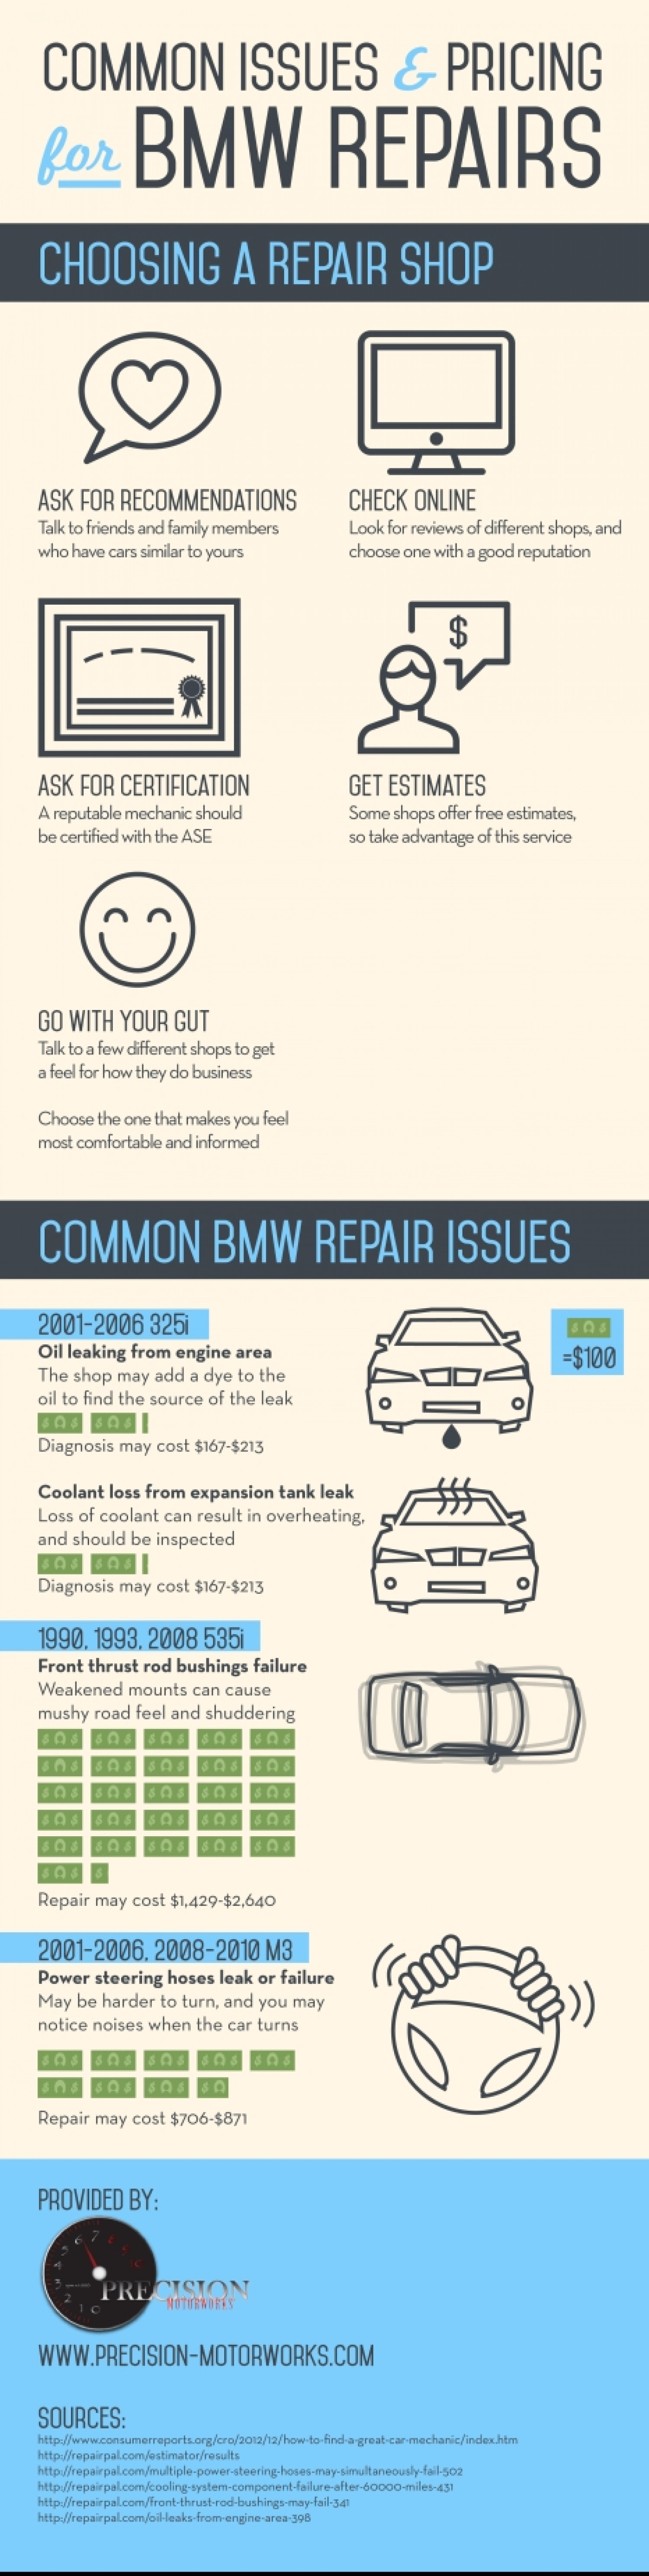 MON ISSUES AND PRICING FOR BMW REPAIRS